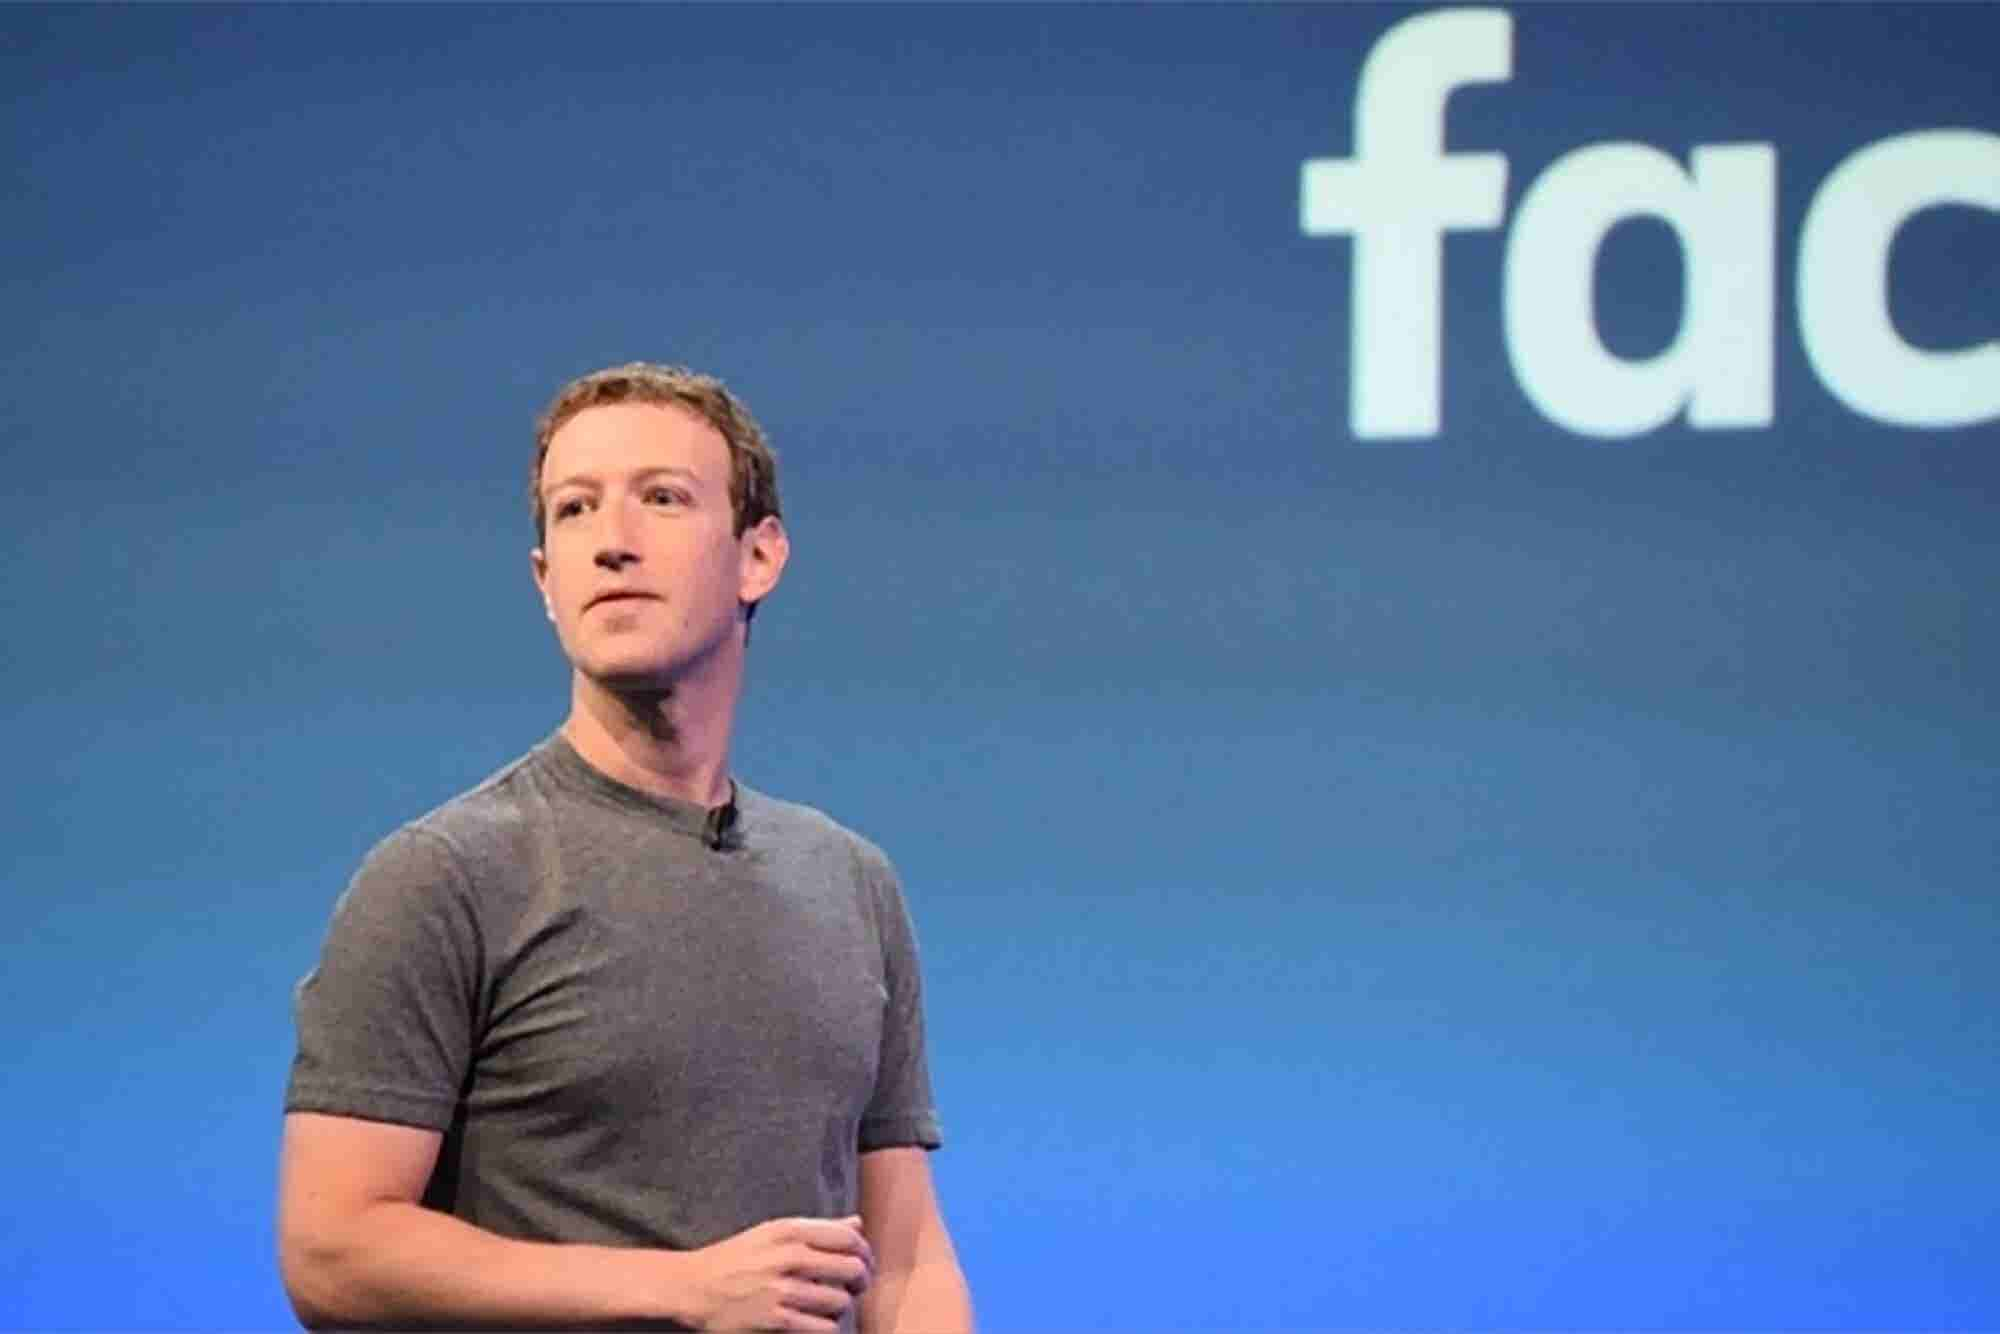 Facebook Employees to Undergo Political Bias Training